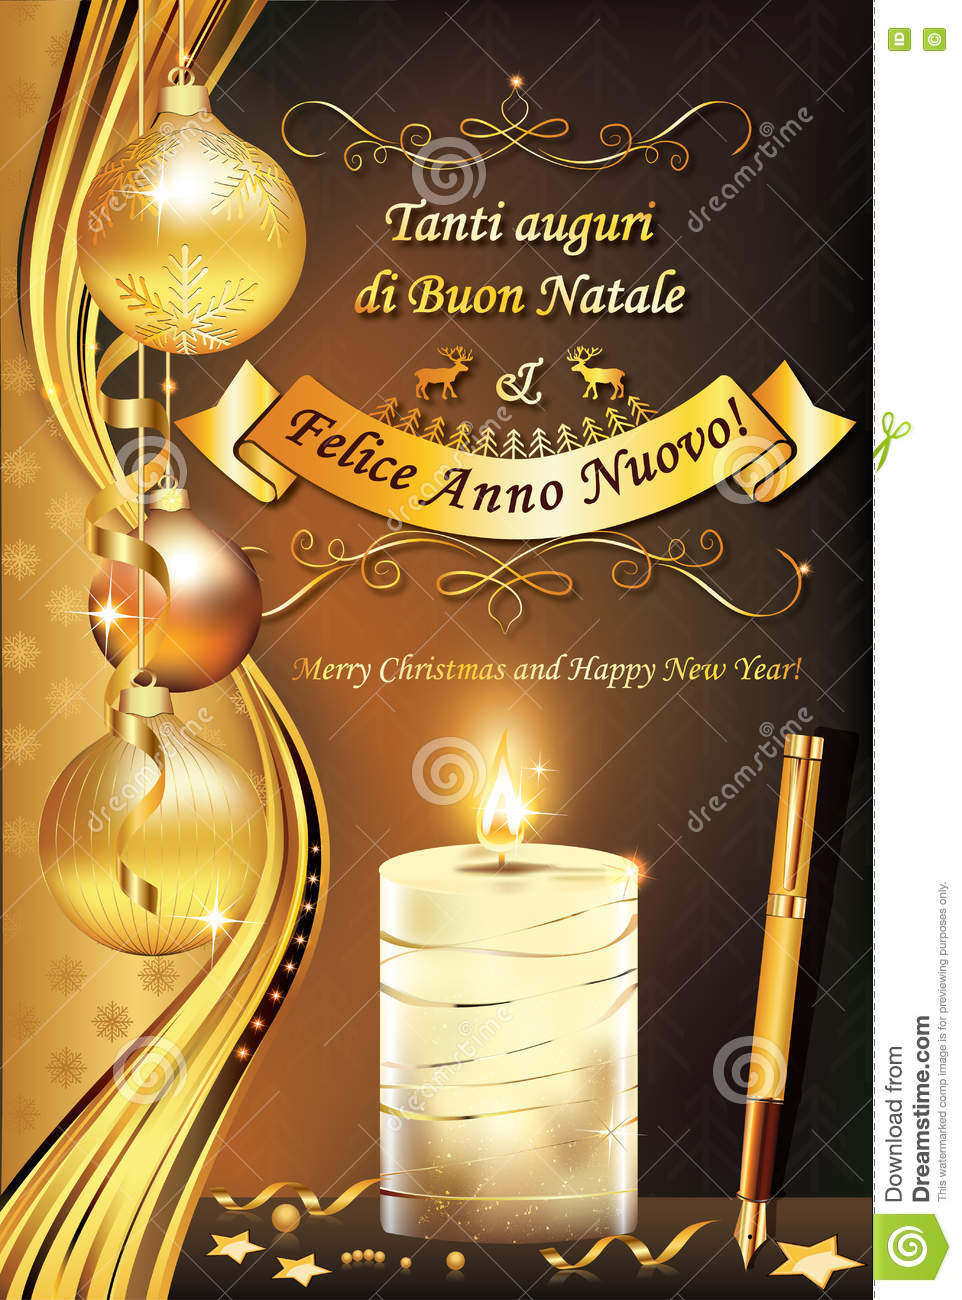 Auguri Di Buon Natale Merry Christmas.Italian Greeting Card For Winter Holiday Stock Illustration